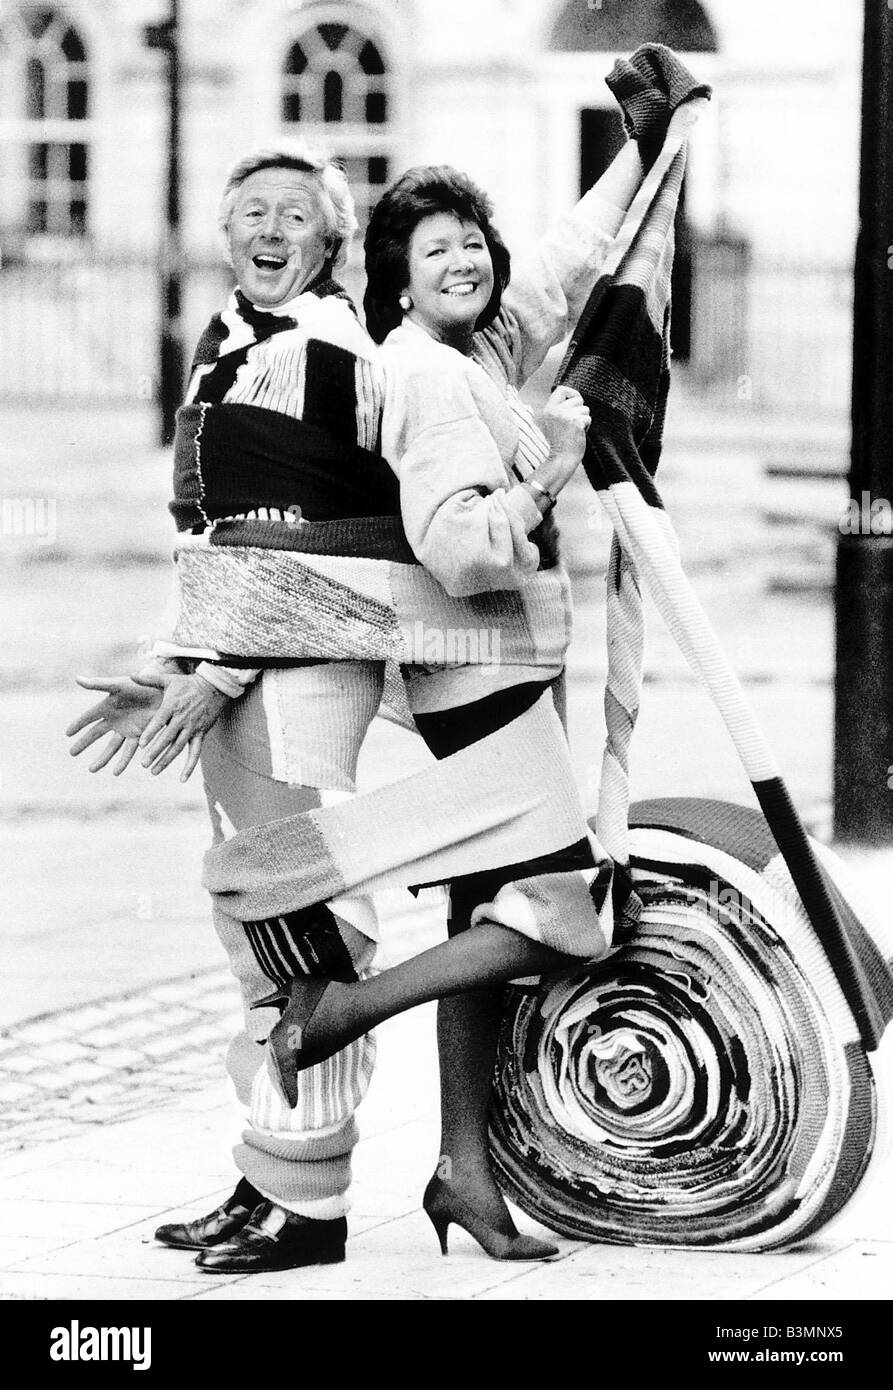 Michael Aspel tv presenter with Cilla Black tv presenter and singer trying to raise money for charity - Stock Image